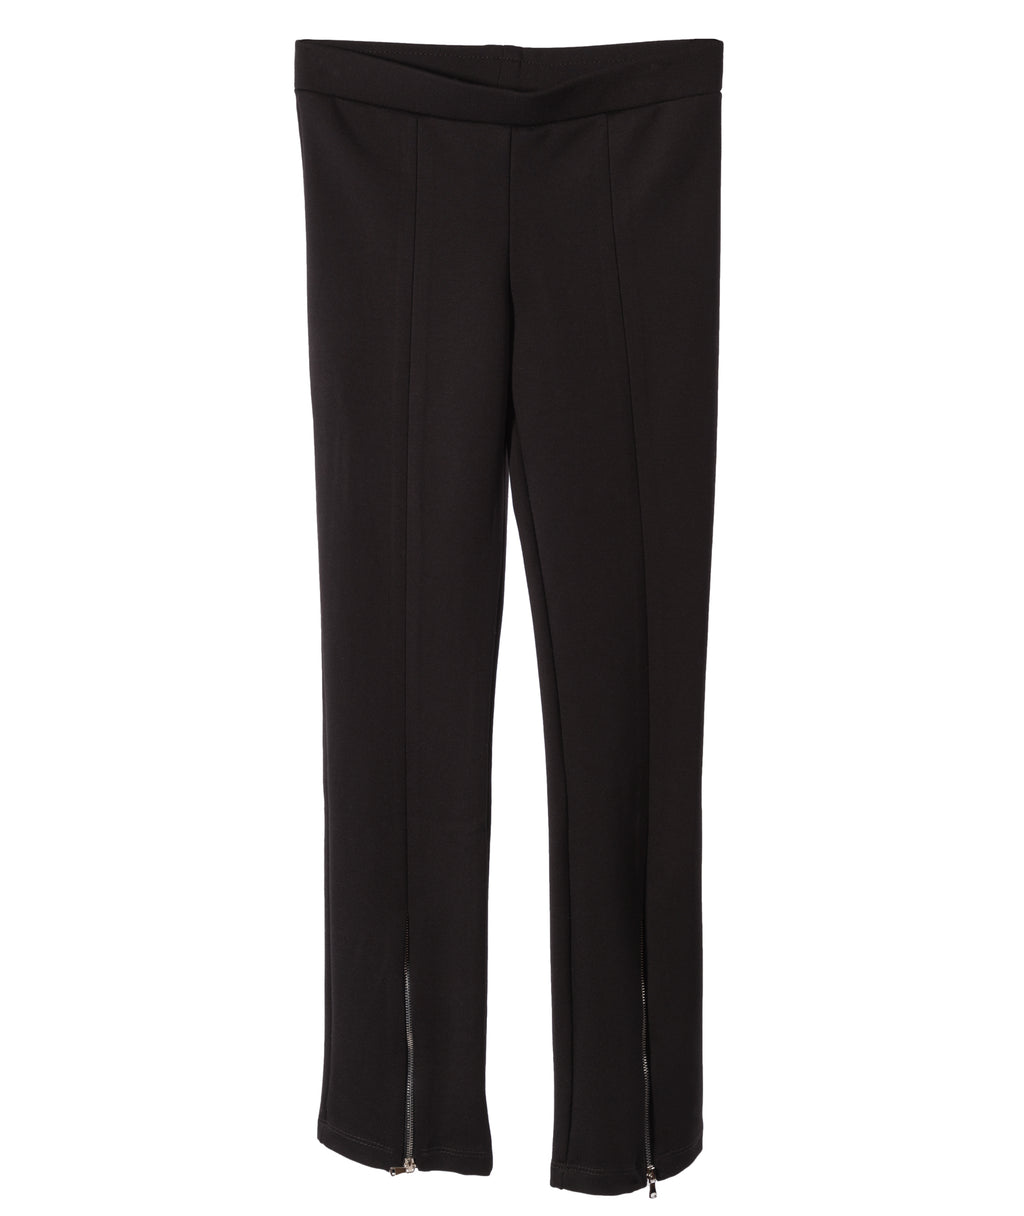 Me.n.u. Girls Black Zip Pants